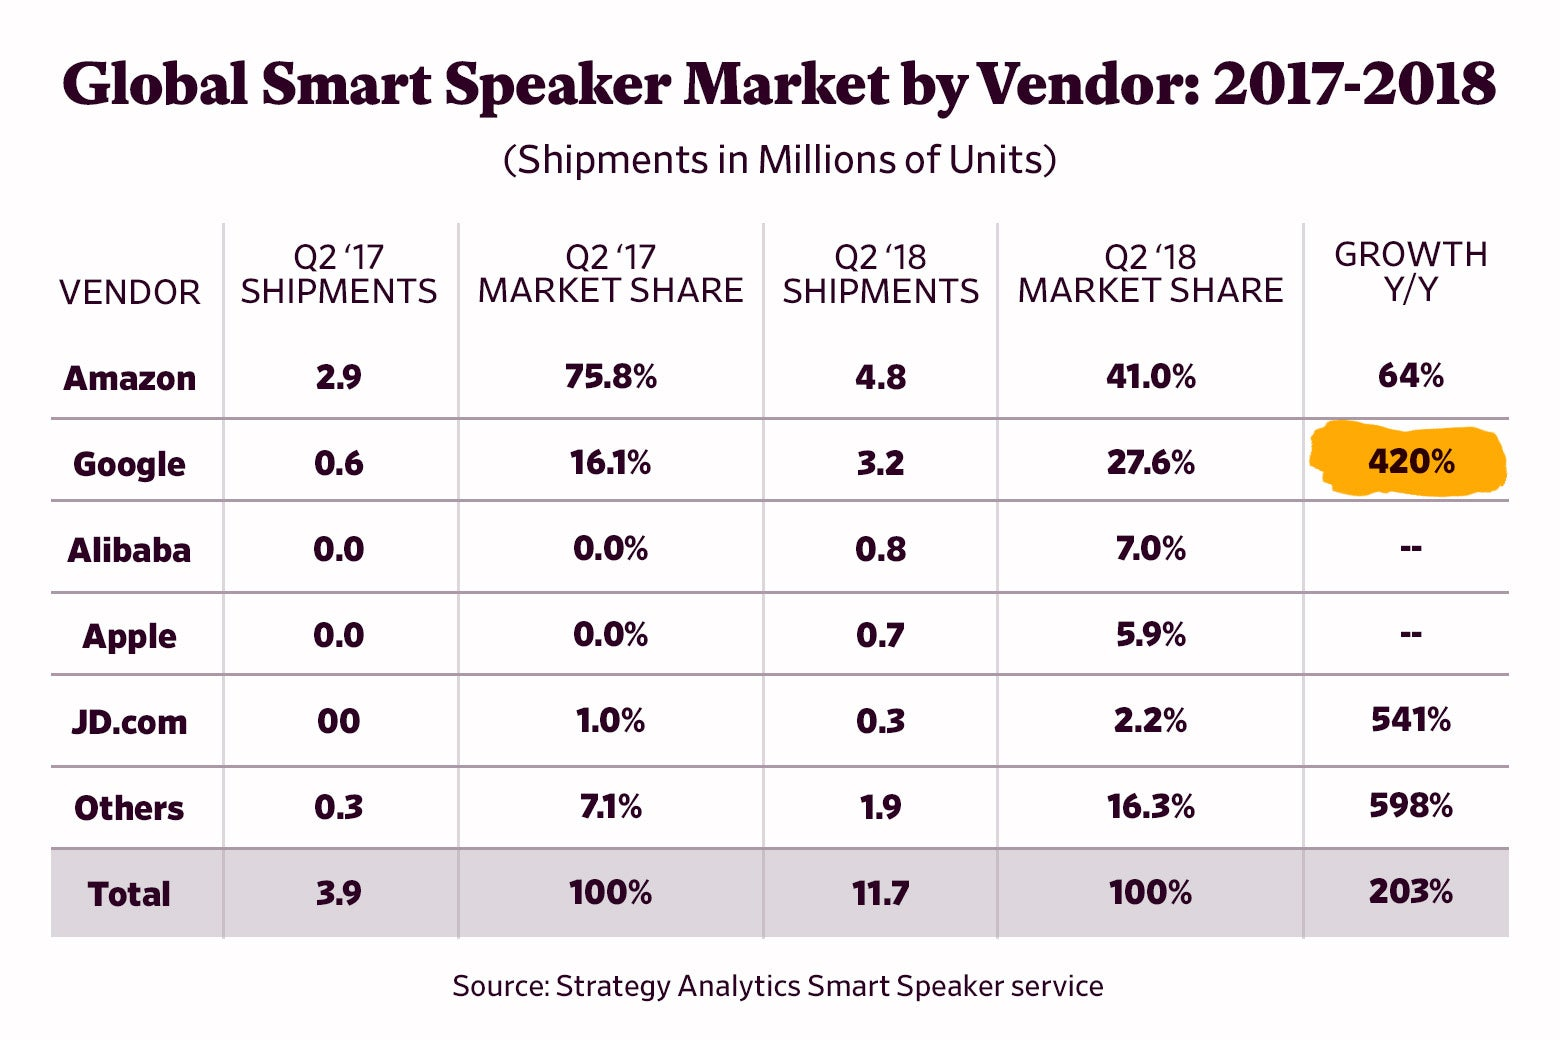 Global smart speaker market growth from 2017 to 2018.